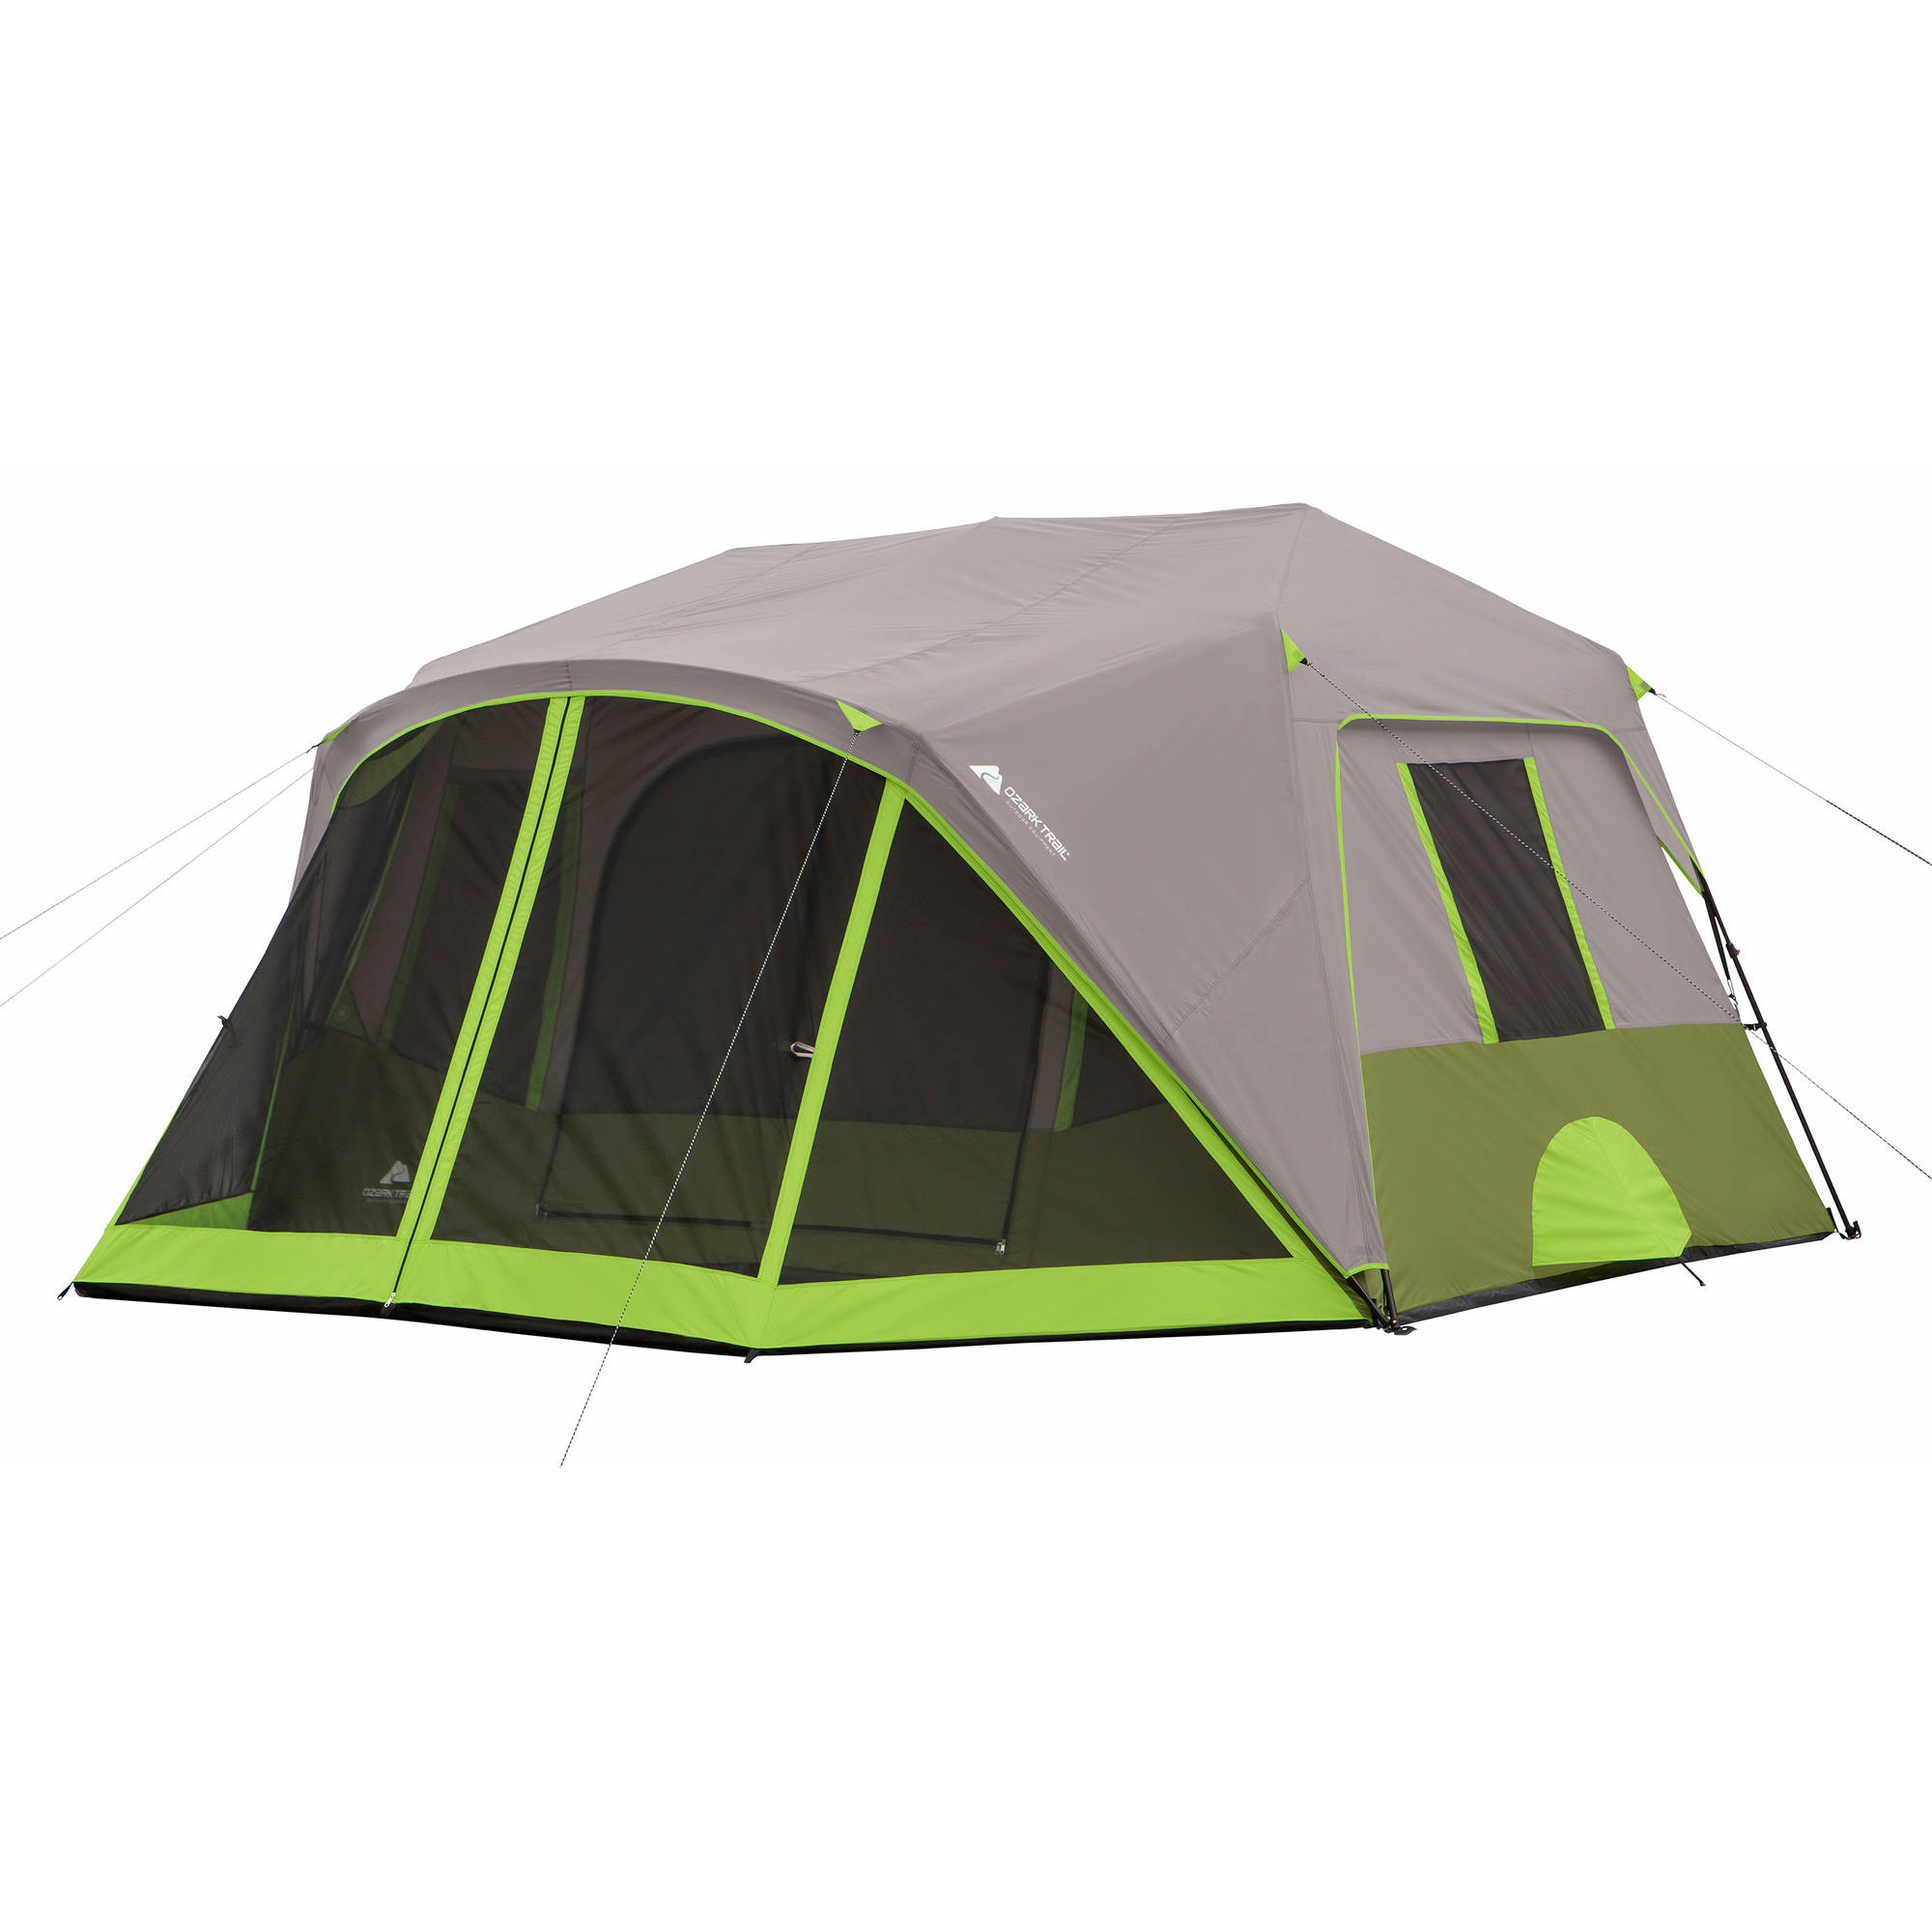 Ozark Trail 9 Person 2 Room Instant Cabin Tent With Screen Room    Walmart.com